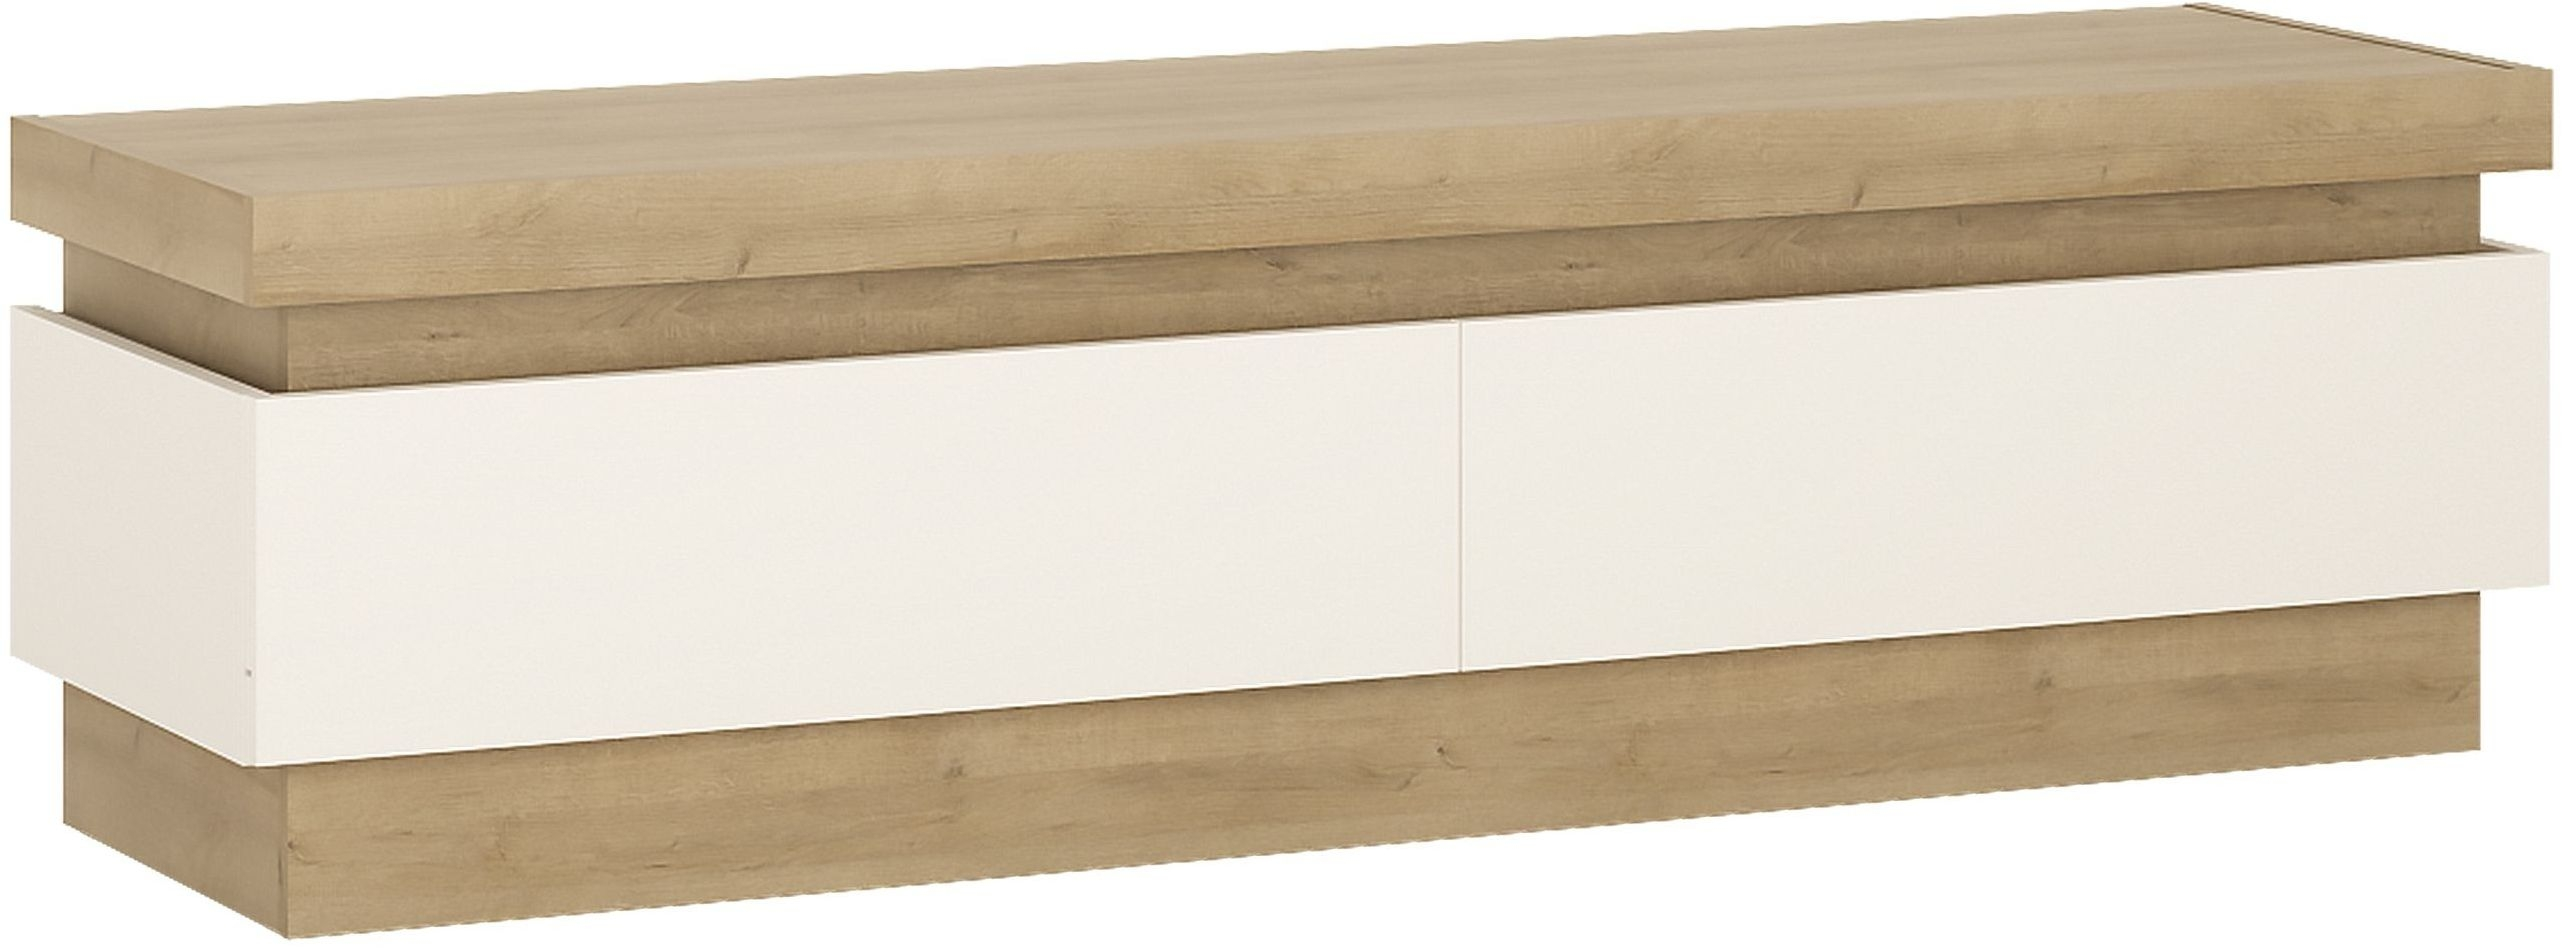 Lyon Riviera Oak and White High Gloss Tv Cabinet - 2 Drawer (Including Led Lighting)